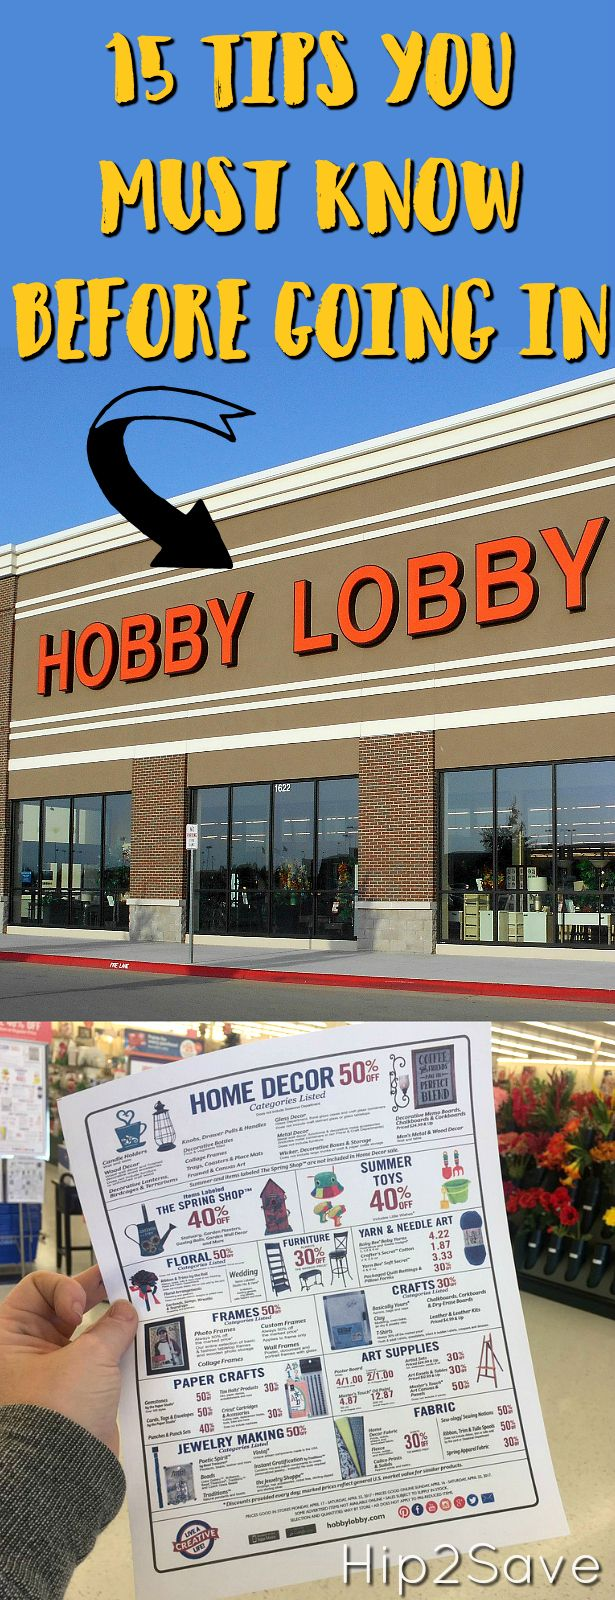 15 of the Best Ways to Save Big at Hobby Lobby Shopping